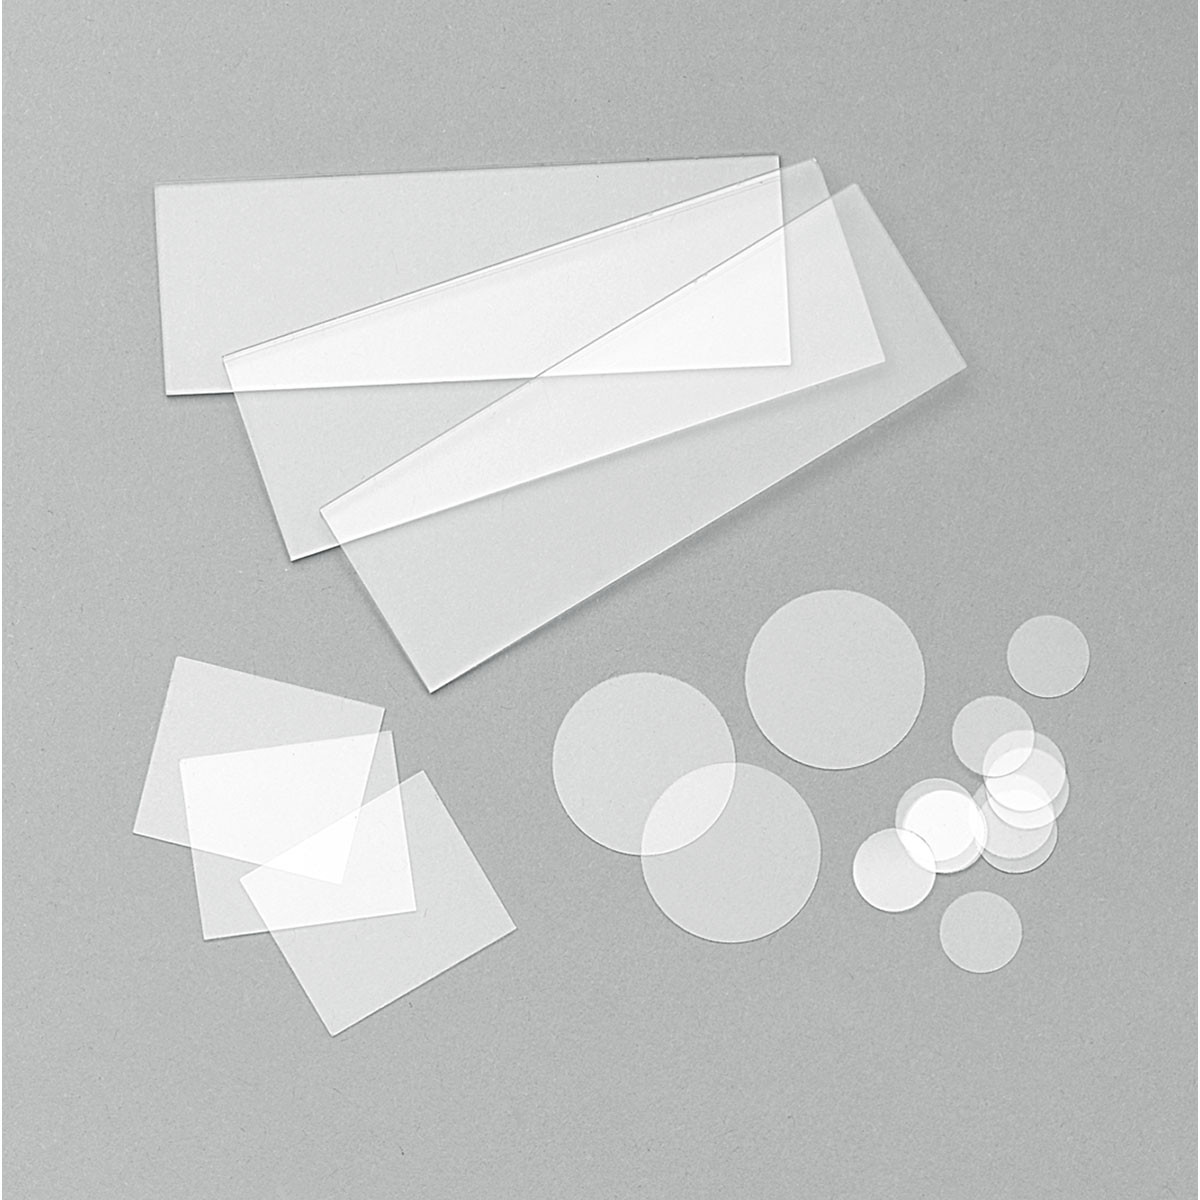 Cover Slips No. 1 22x22mm (100/ pack)